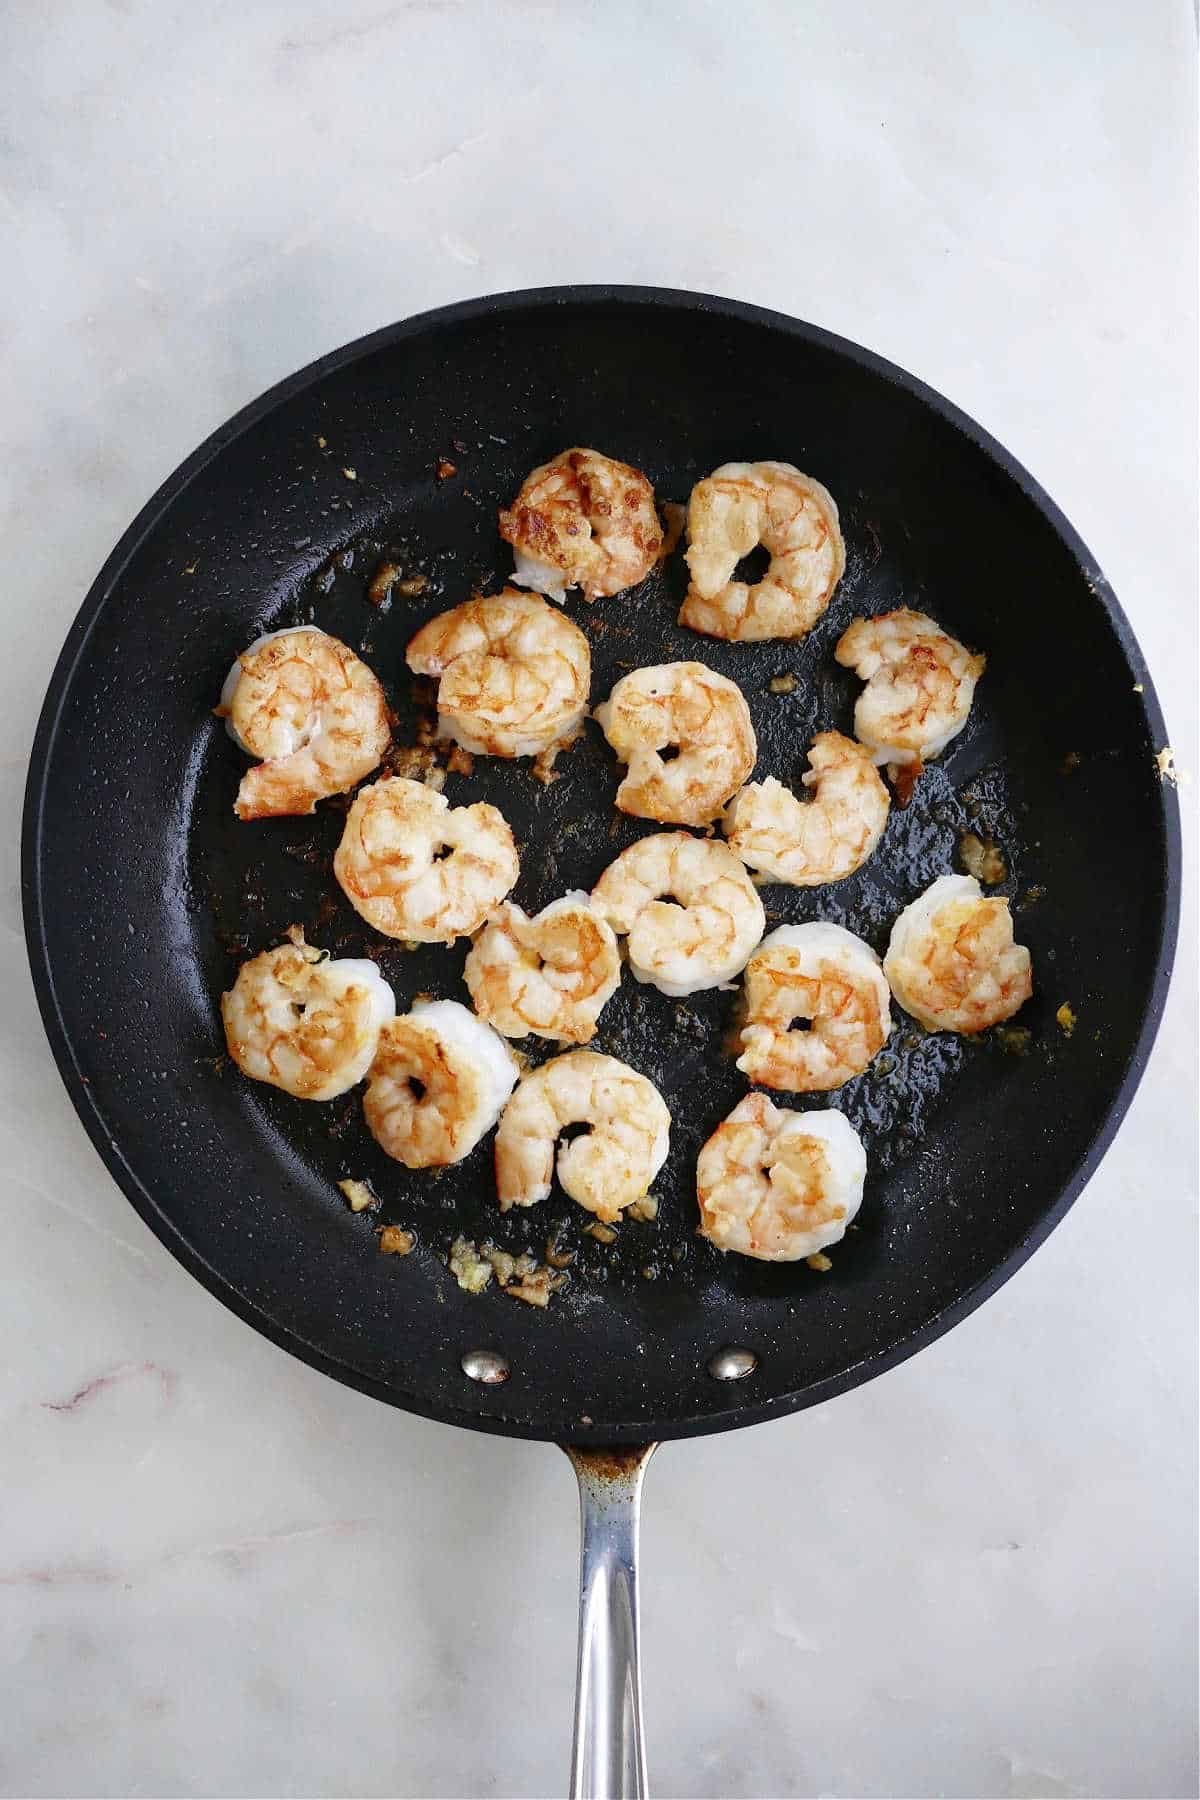 shrimp cooking in lemon garlic butter in a skillet on a counter